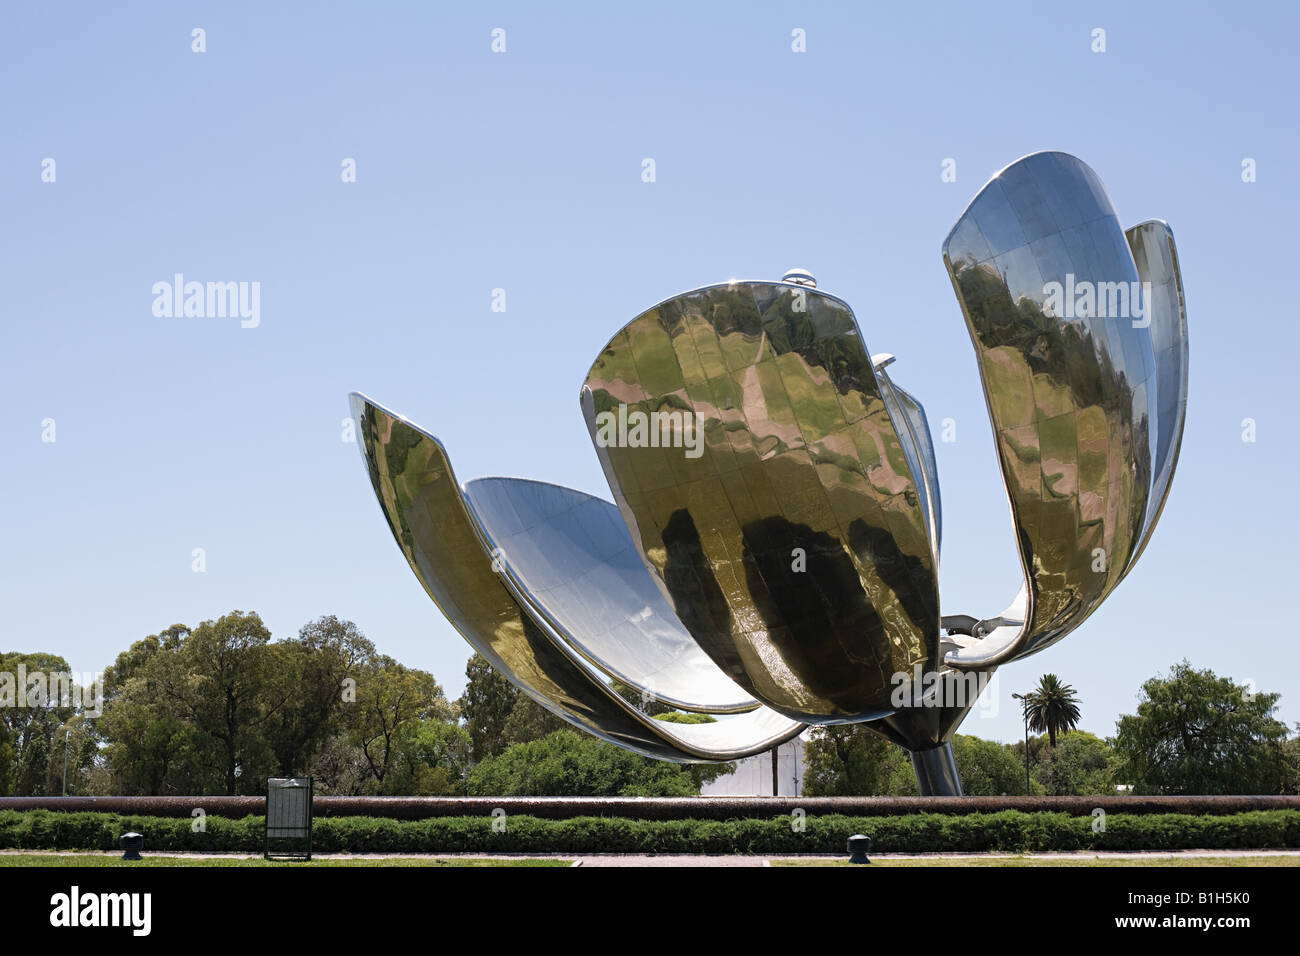 Flower sculpture in buenos aires - Stock Image